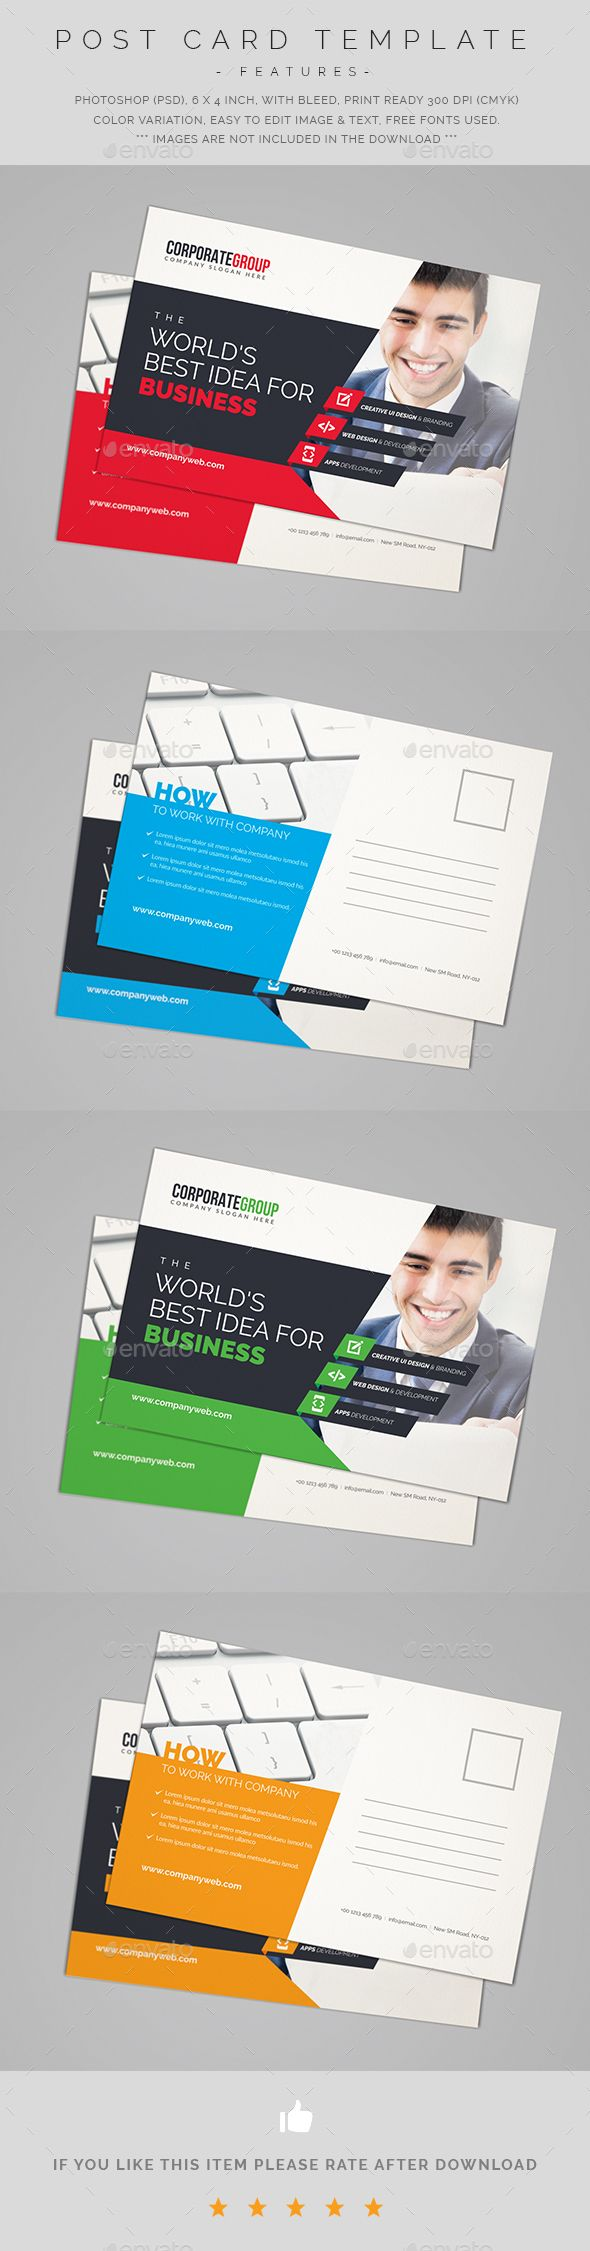 Corporate Postcard  — PSD Template #postal cards #postcard • Download ➝ https://graphicriver.net/item/corporate-postcard/18433269?ref=pxcr